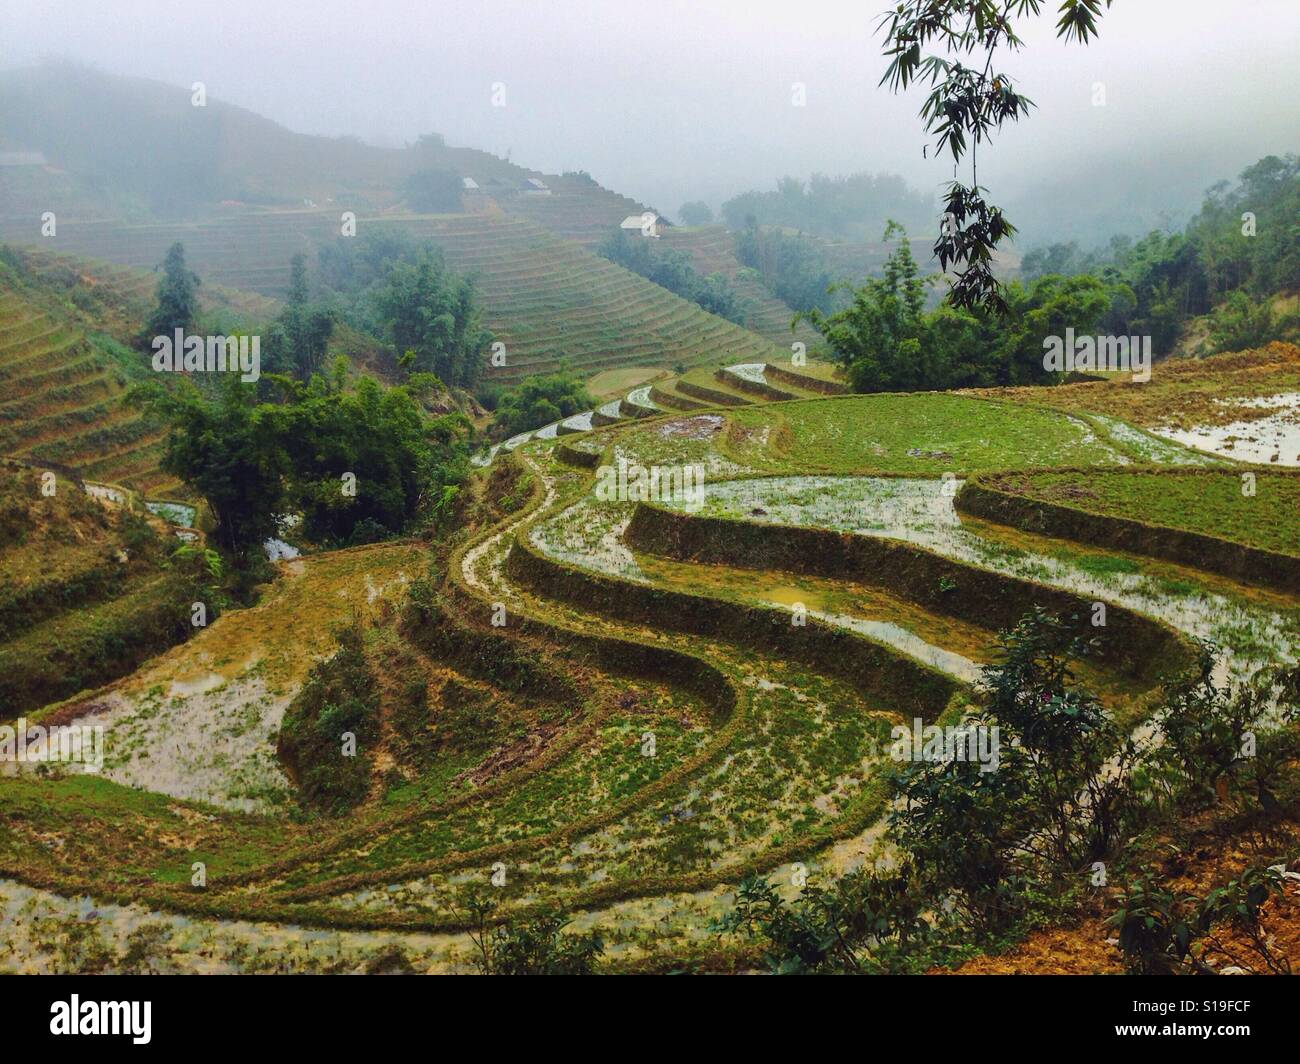 Rice terraces in the mountains - Stock Image